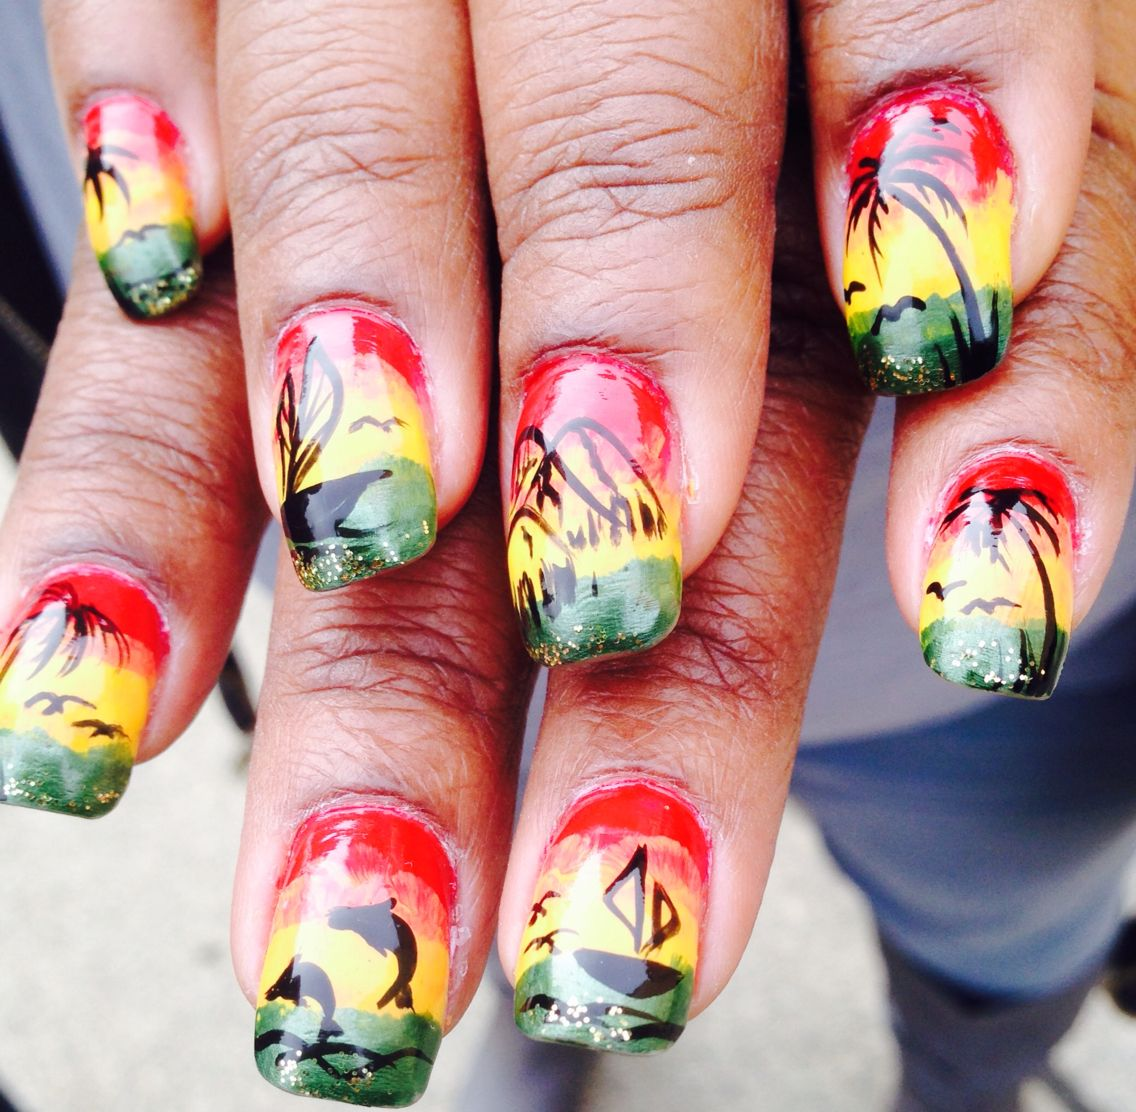 Jamaican Nail Art | Nail art | Pinterest | Rasta nails, Beautiful ...